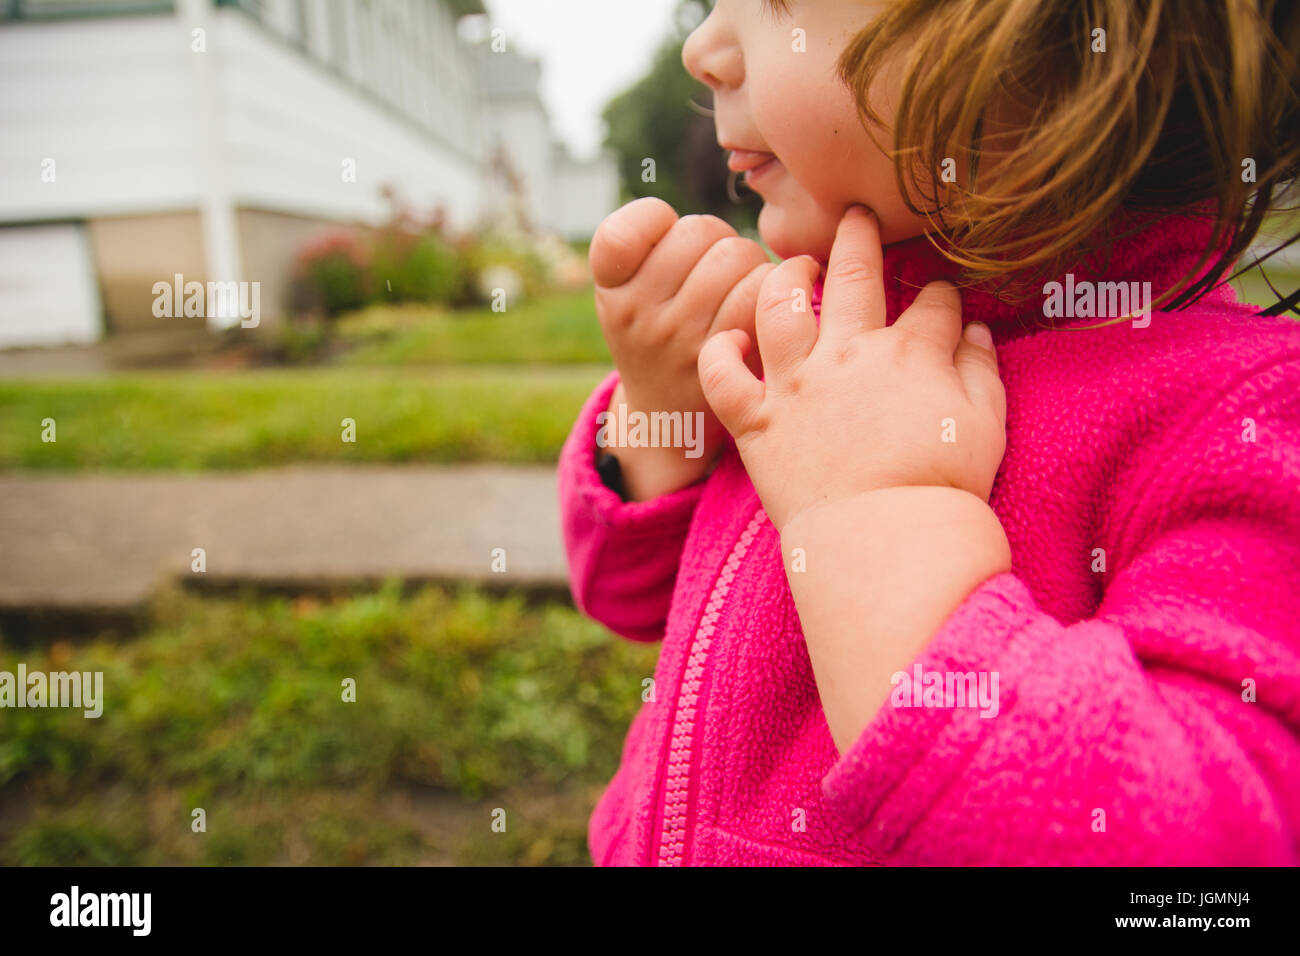 A toddler zipping her jacket hands only. Stock Photo